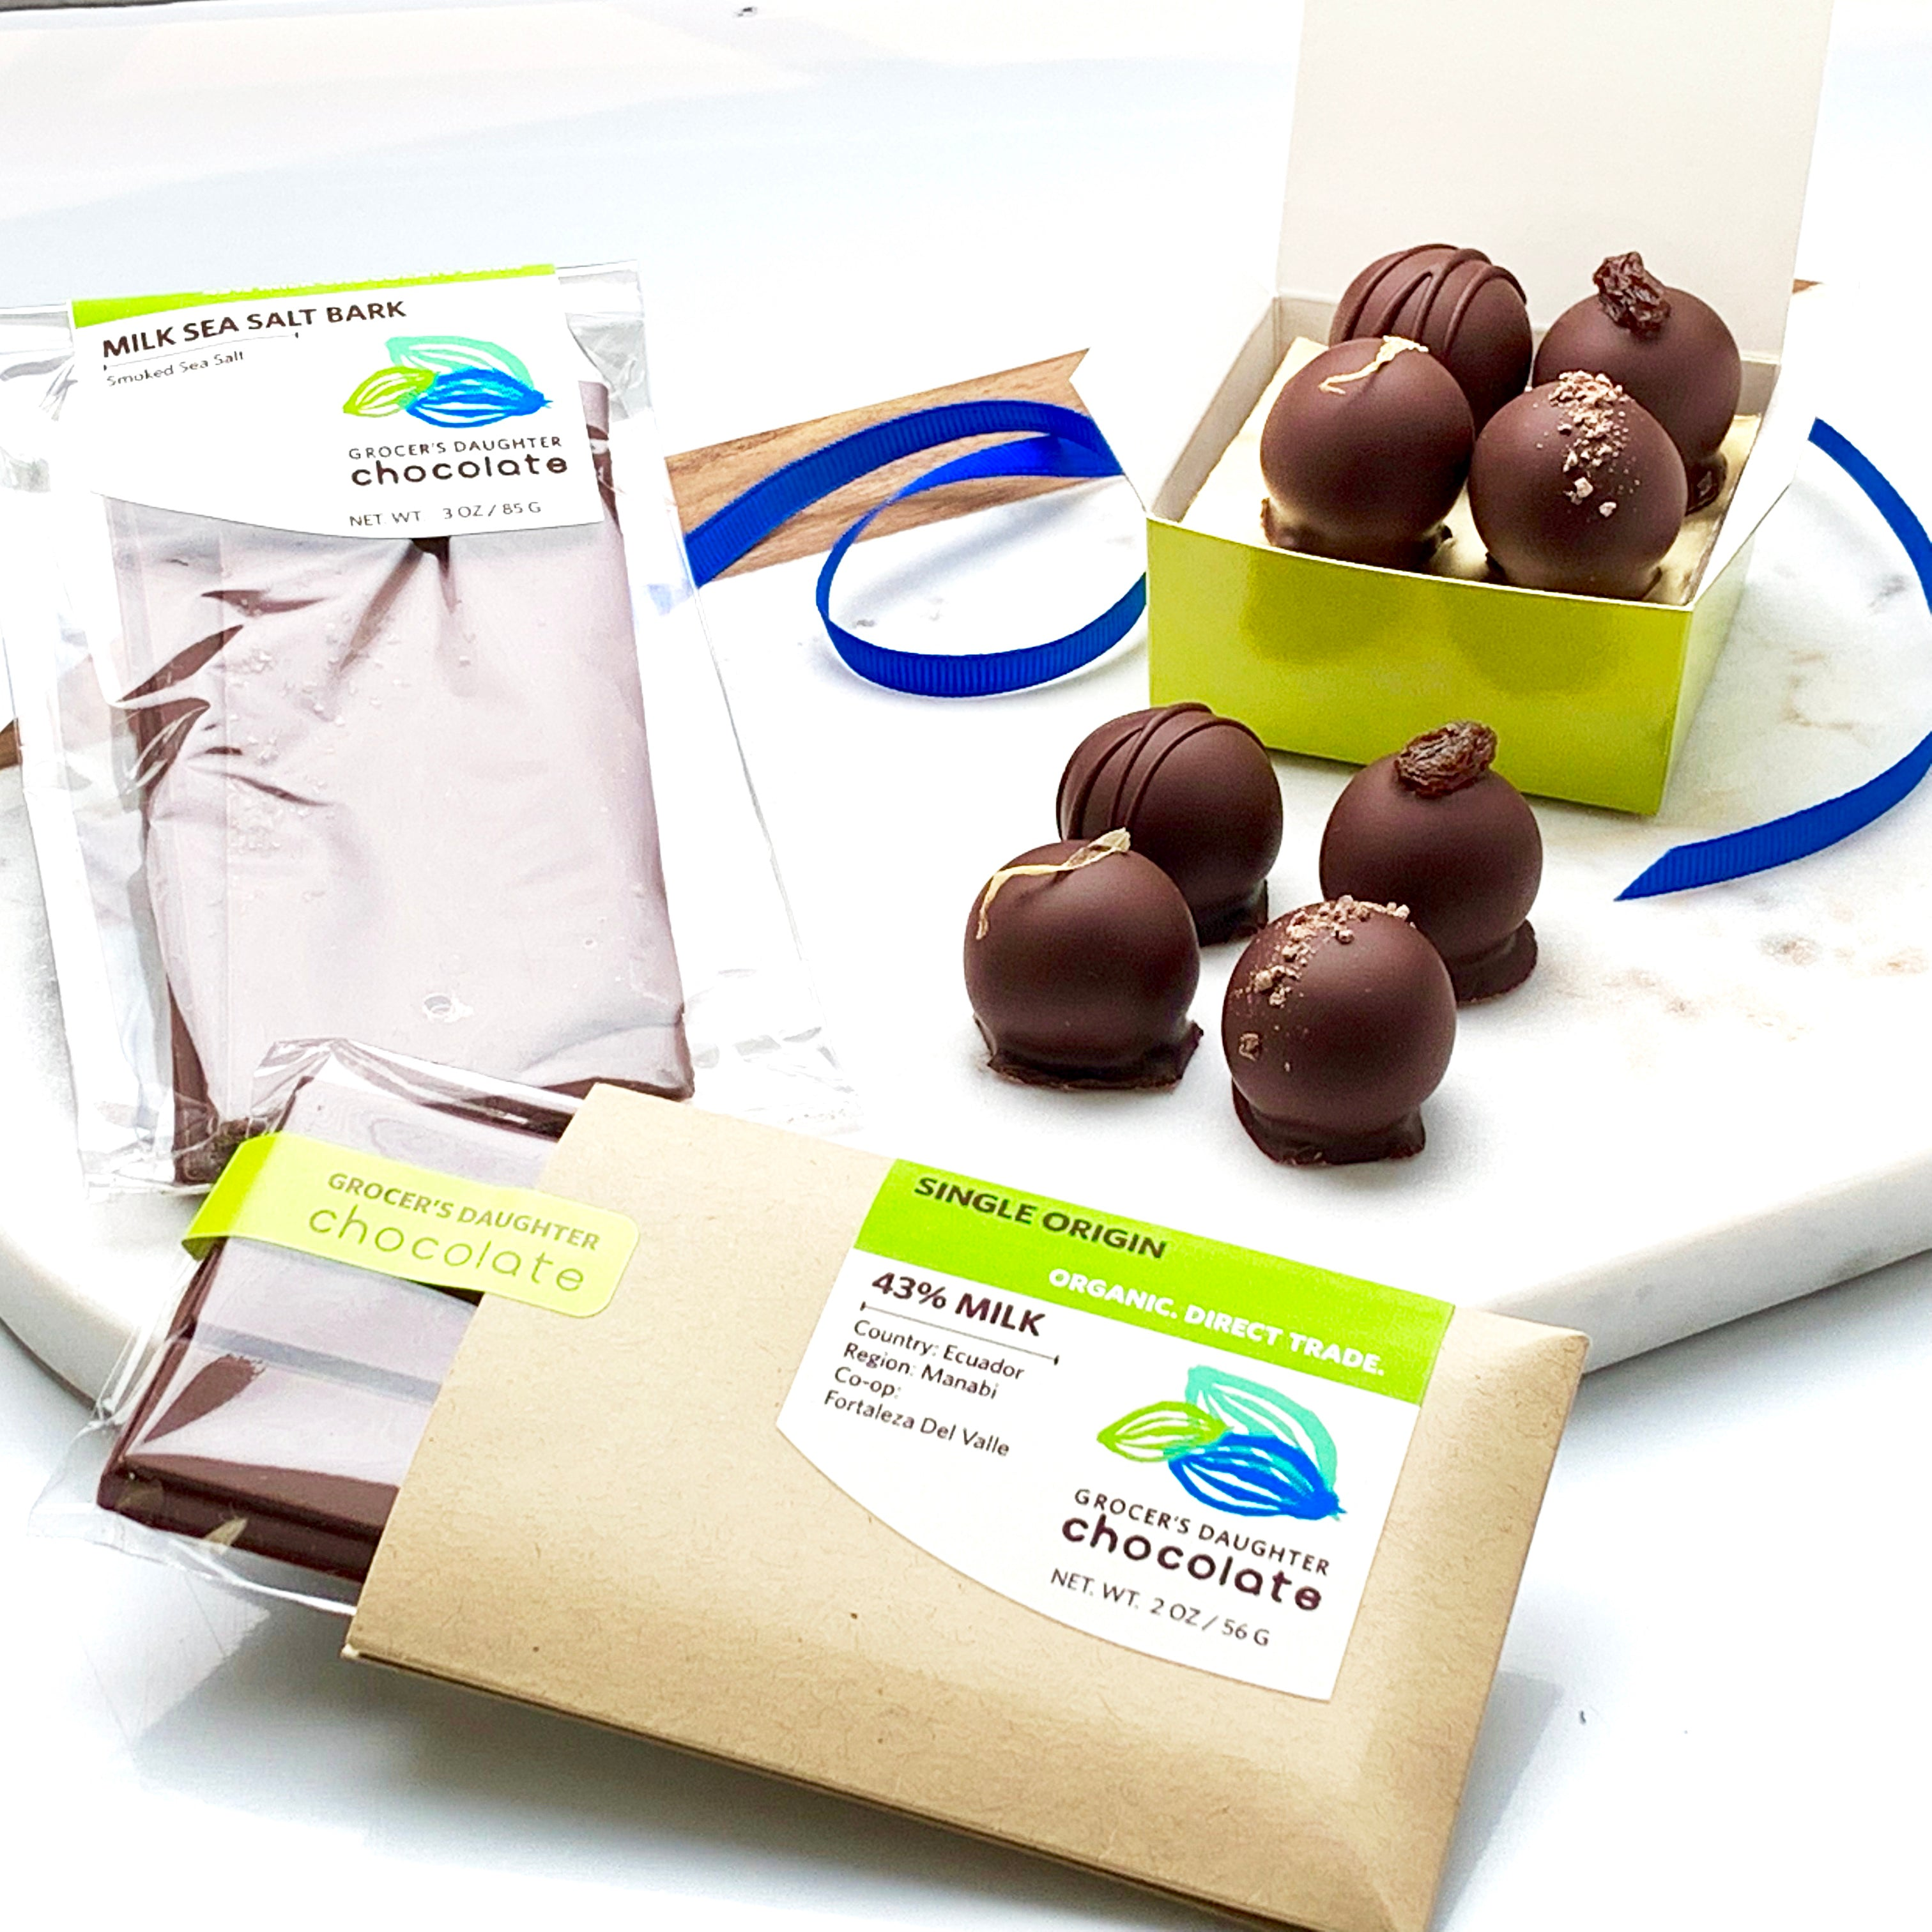 Mother's Day Gift Basket | 4 Piece Truffles, Bark, Bar - Grocer's Daughter Chocolate